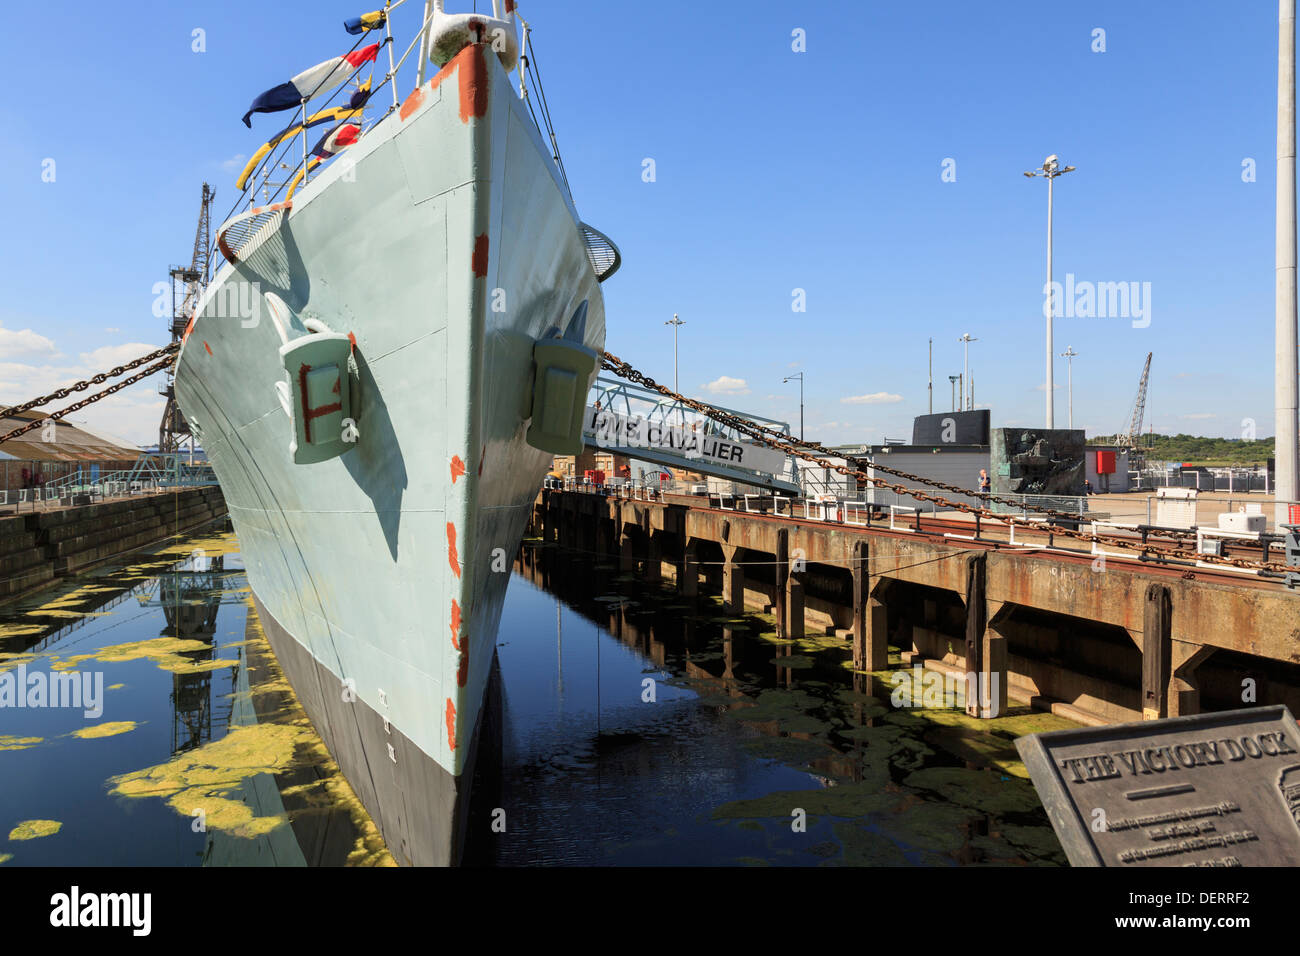 HMS Cavalier Royal Navy destroyer warship at maritime heritage museum in Historic Dockyard at Chatham Kent England UK - Stock Image